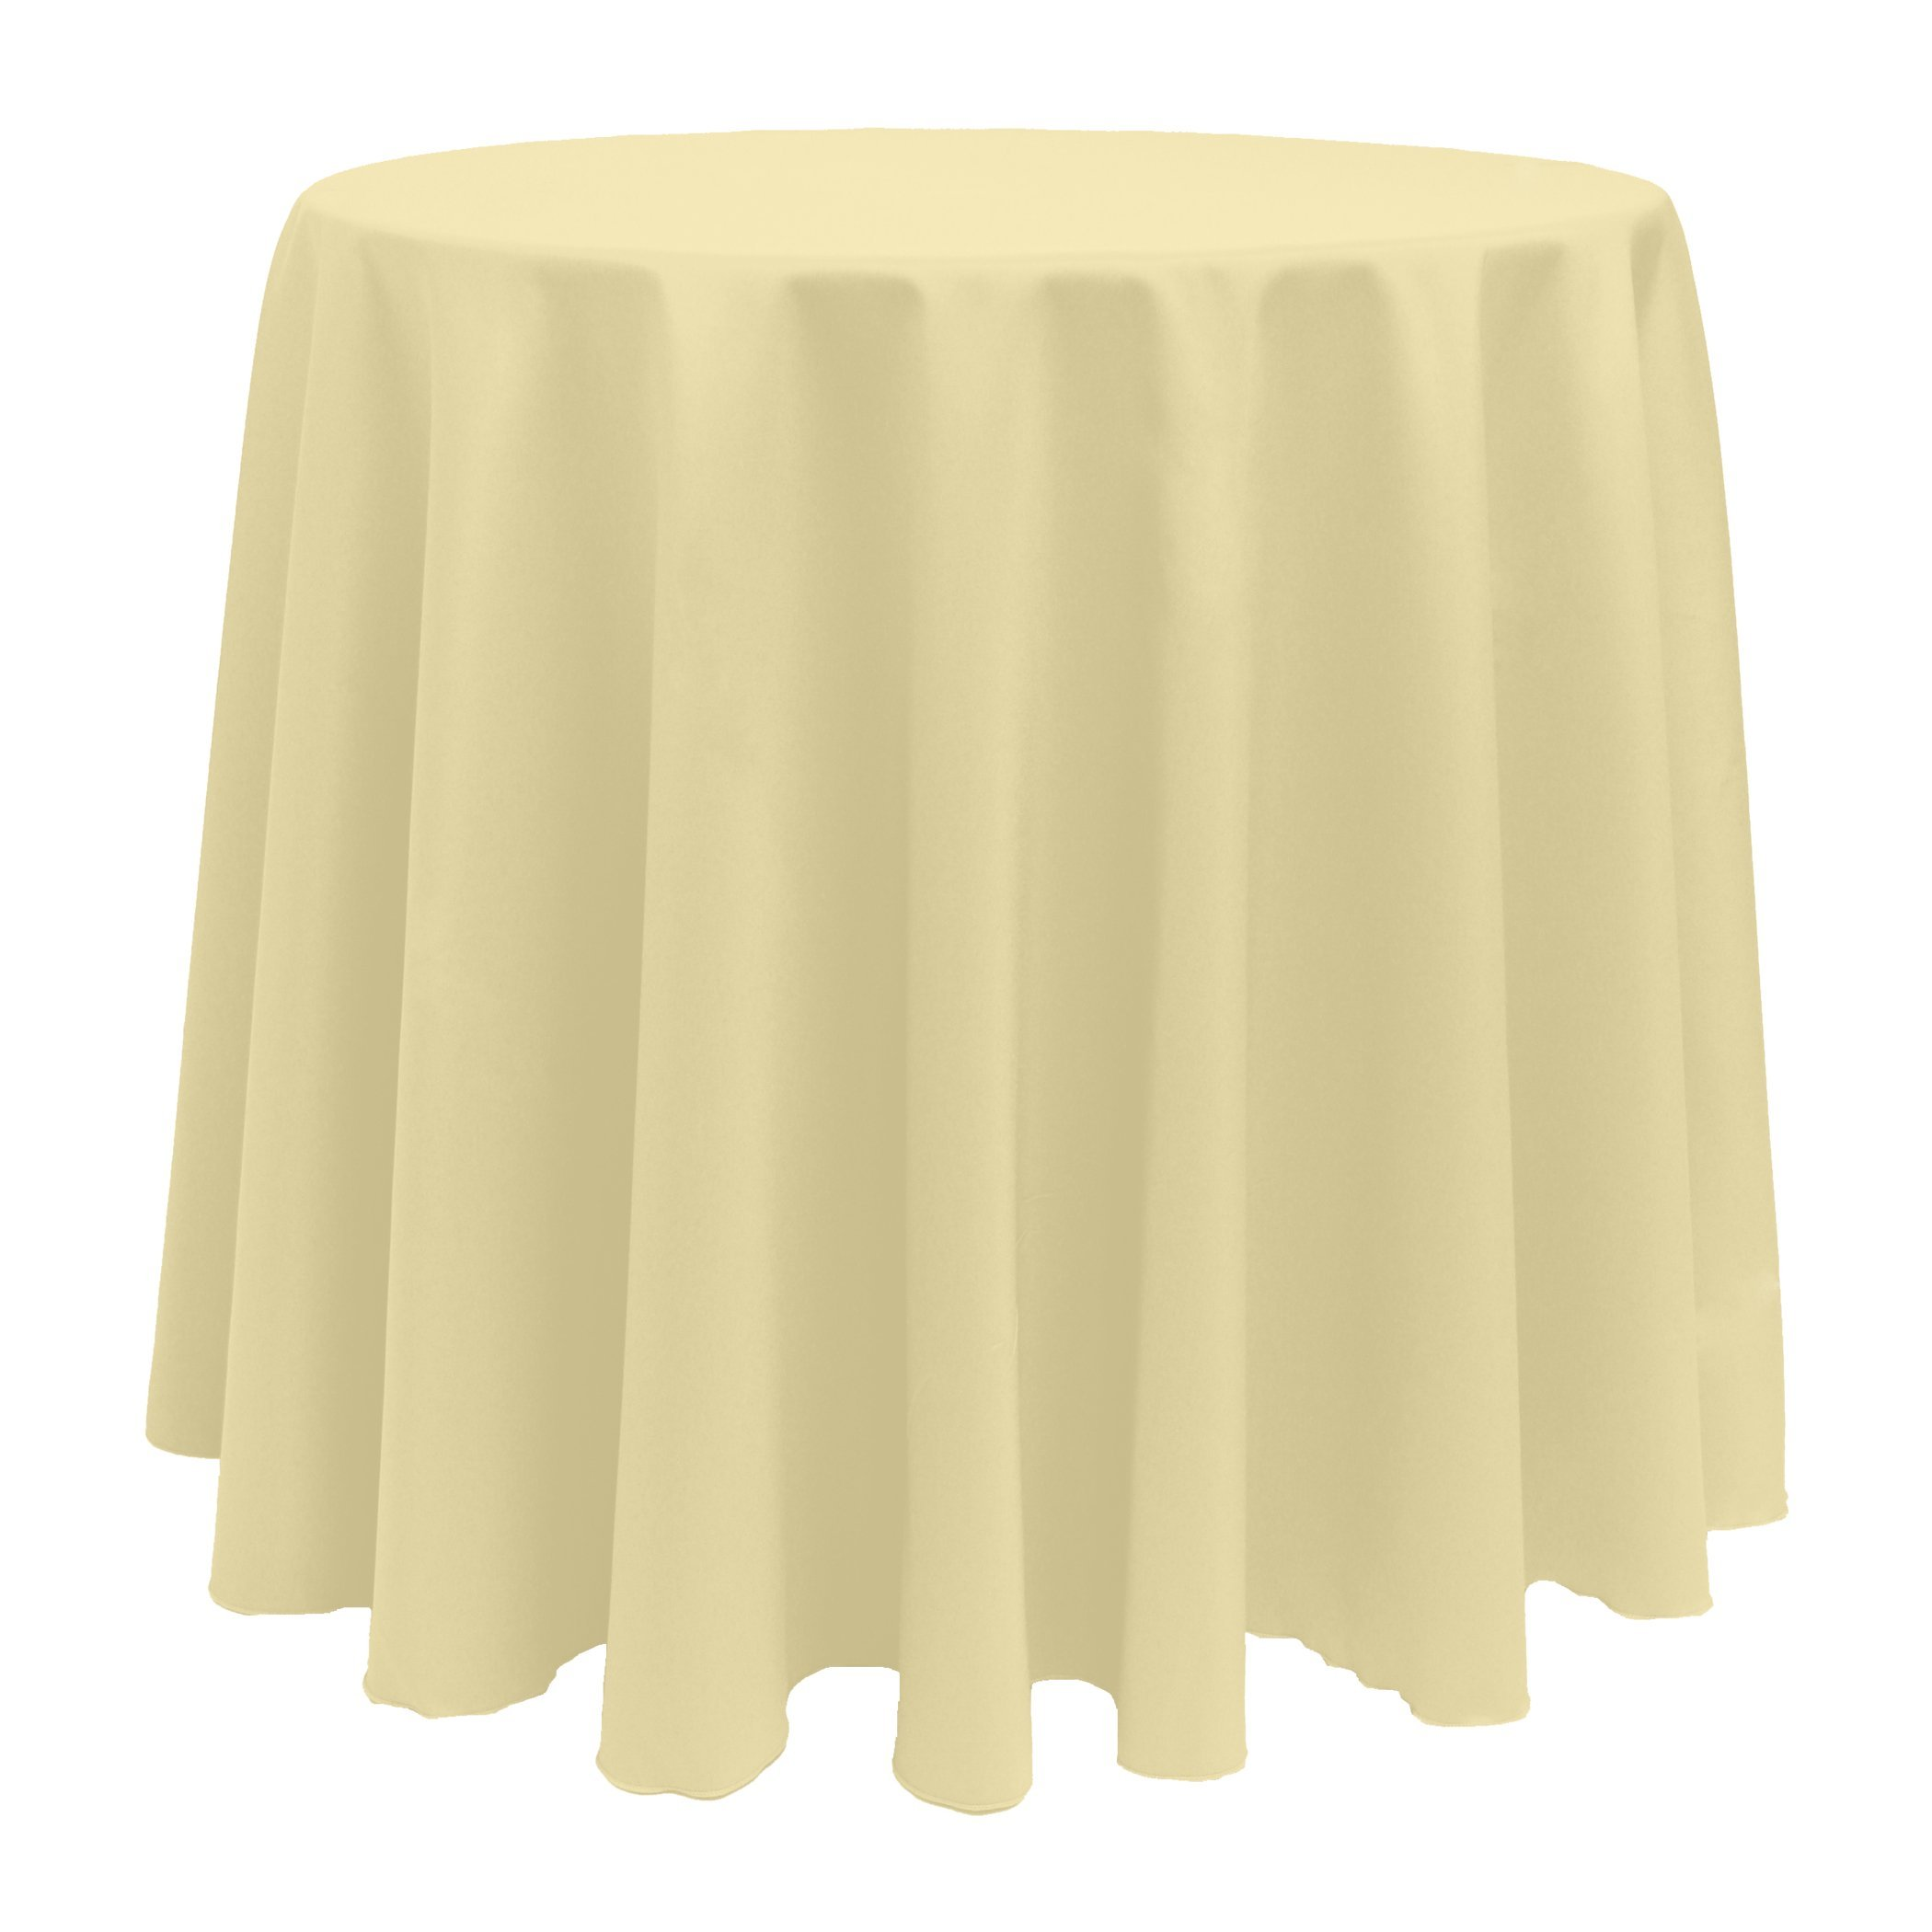 Ultimate Textile (10 Pack) 108-Inch Round Polyester Linen Tablecloth - for Wedding, Restaurant or Banquet use, Honey Light Brown